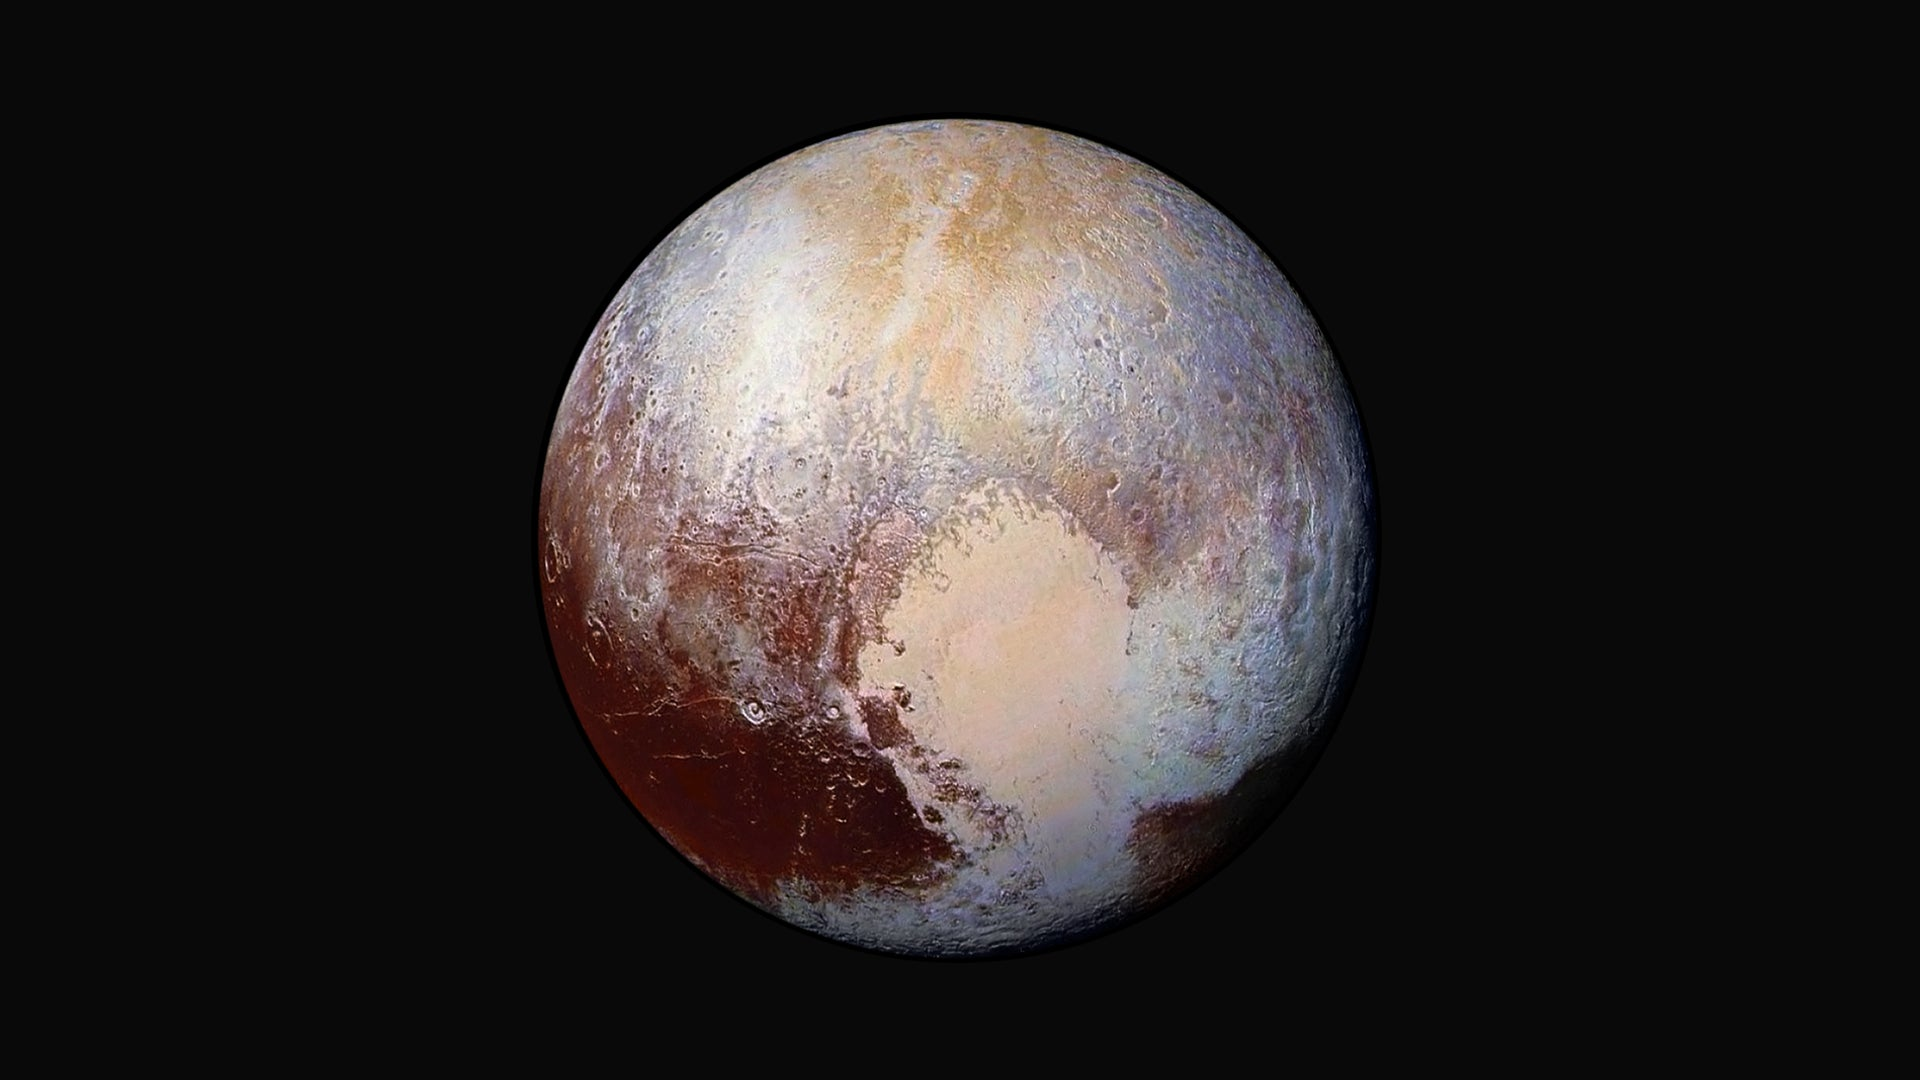 Pluto may be made up of a billion comets